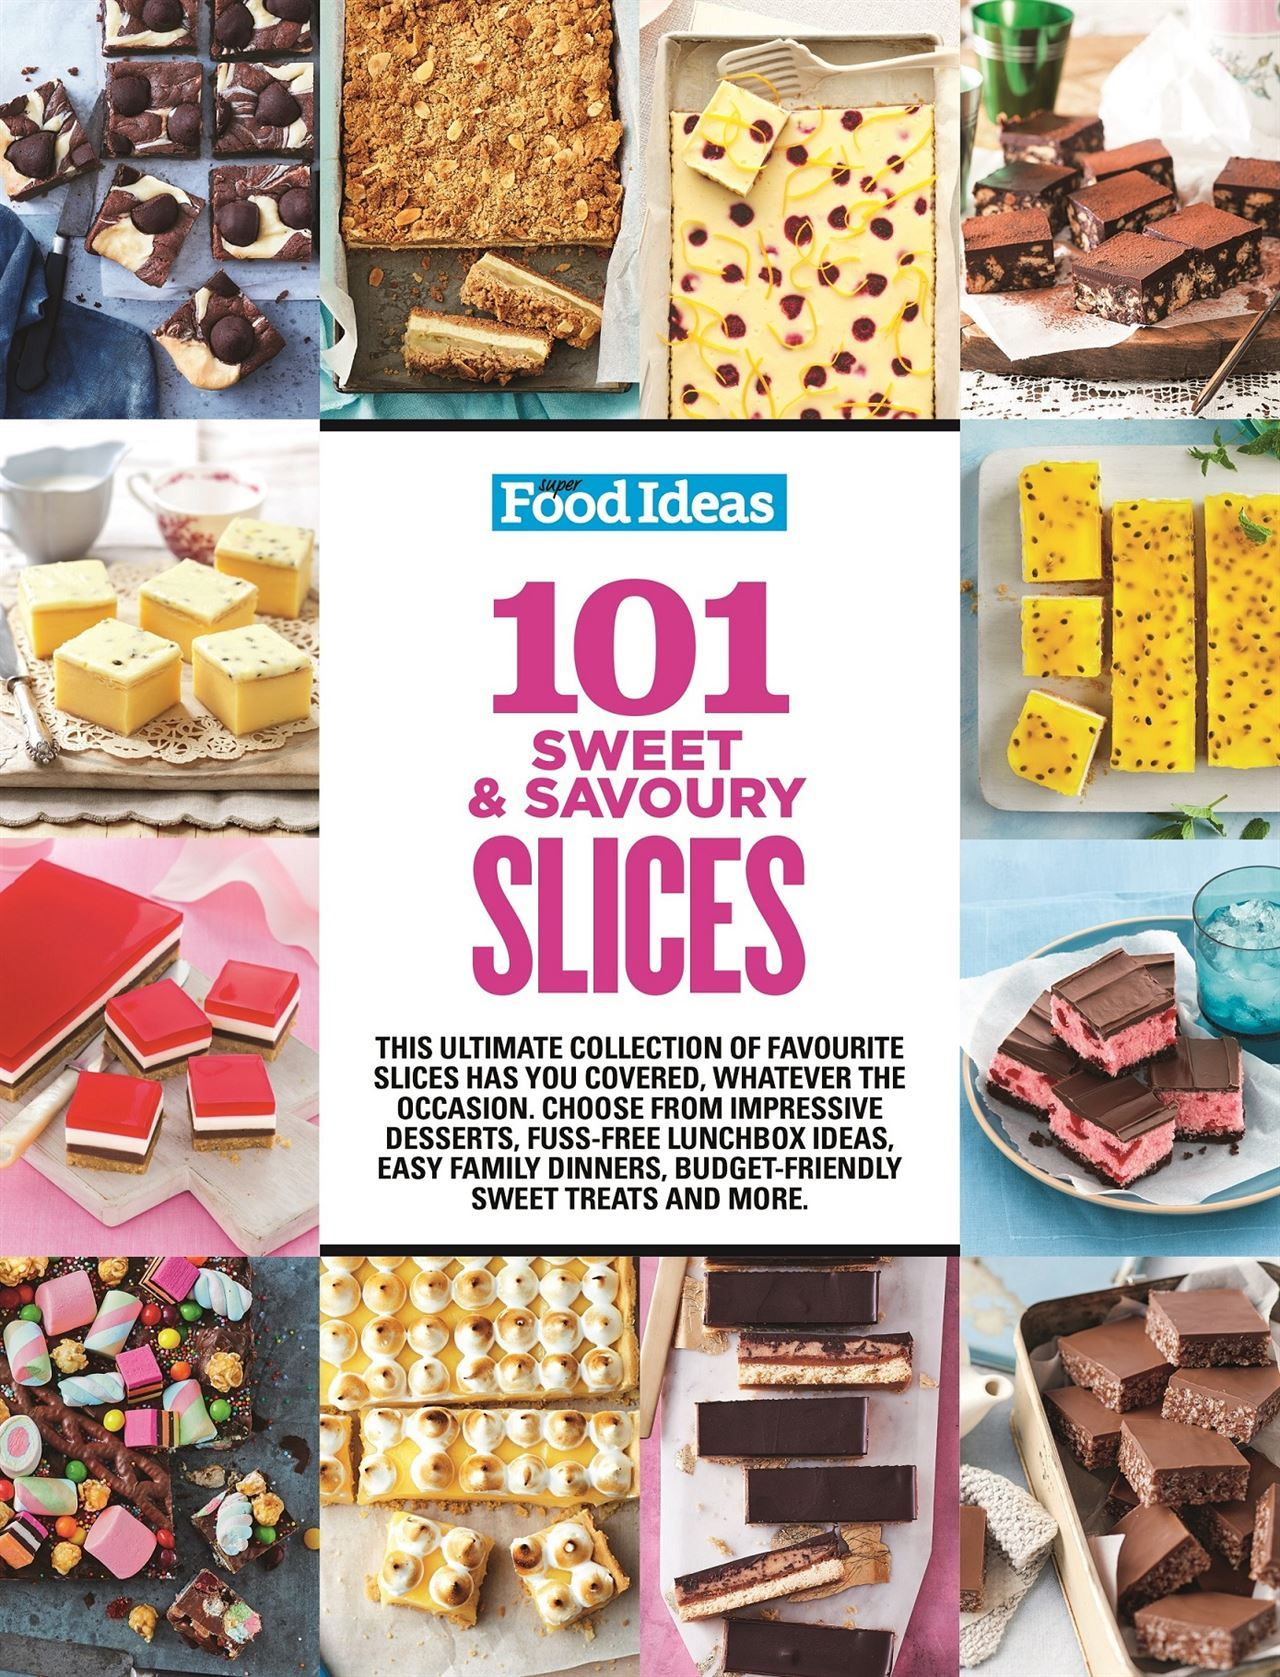 Super Food Ideas 101 Sweet and Savoury Slices